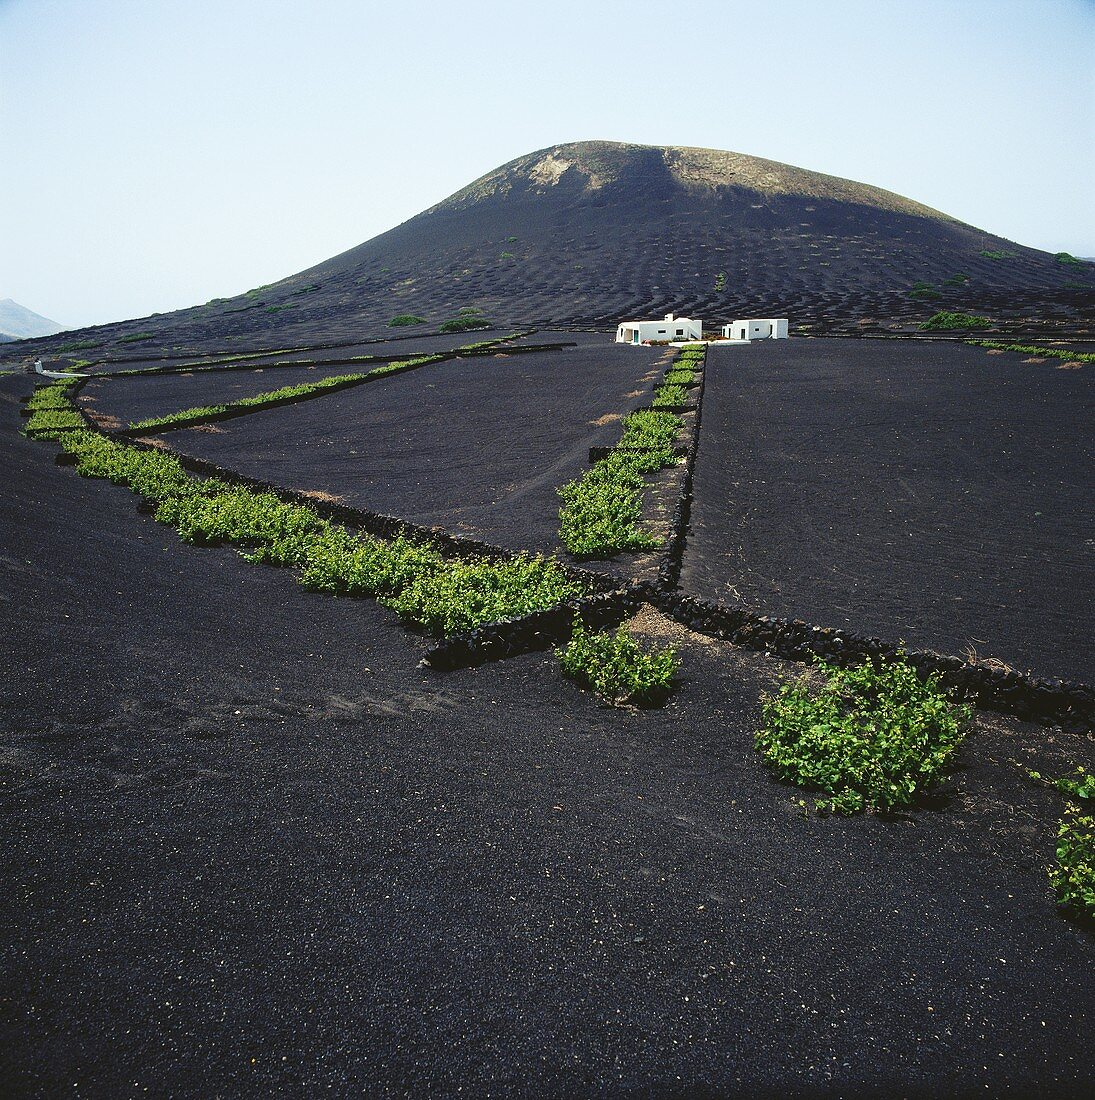 Wine growing on volcanic soil in Lanzarote, Canaries, Spain